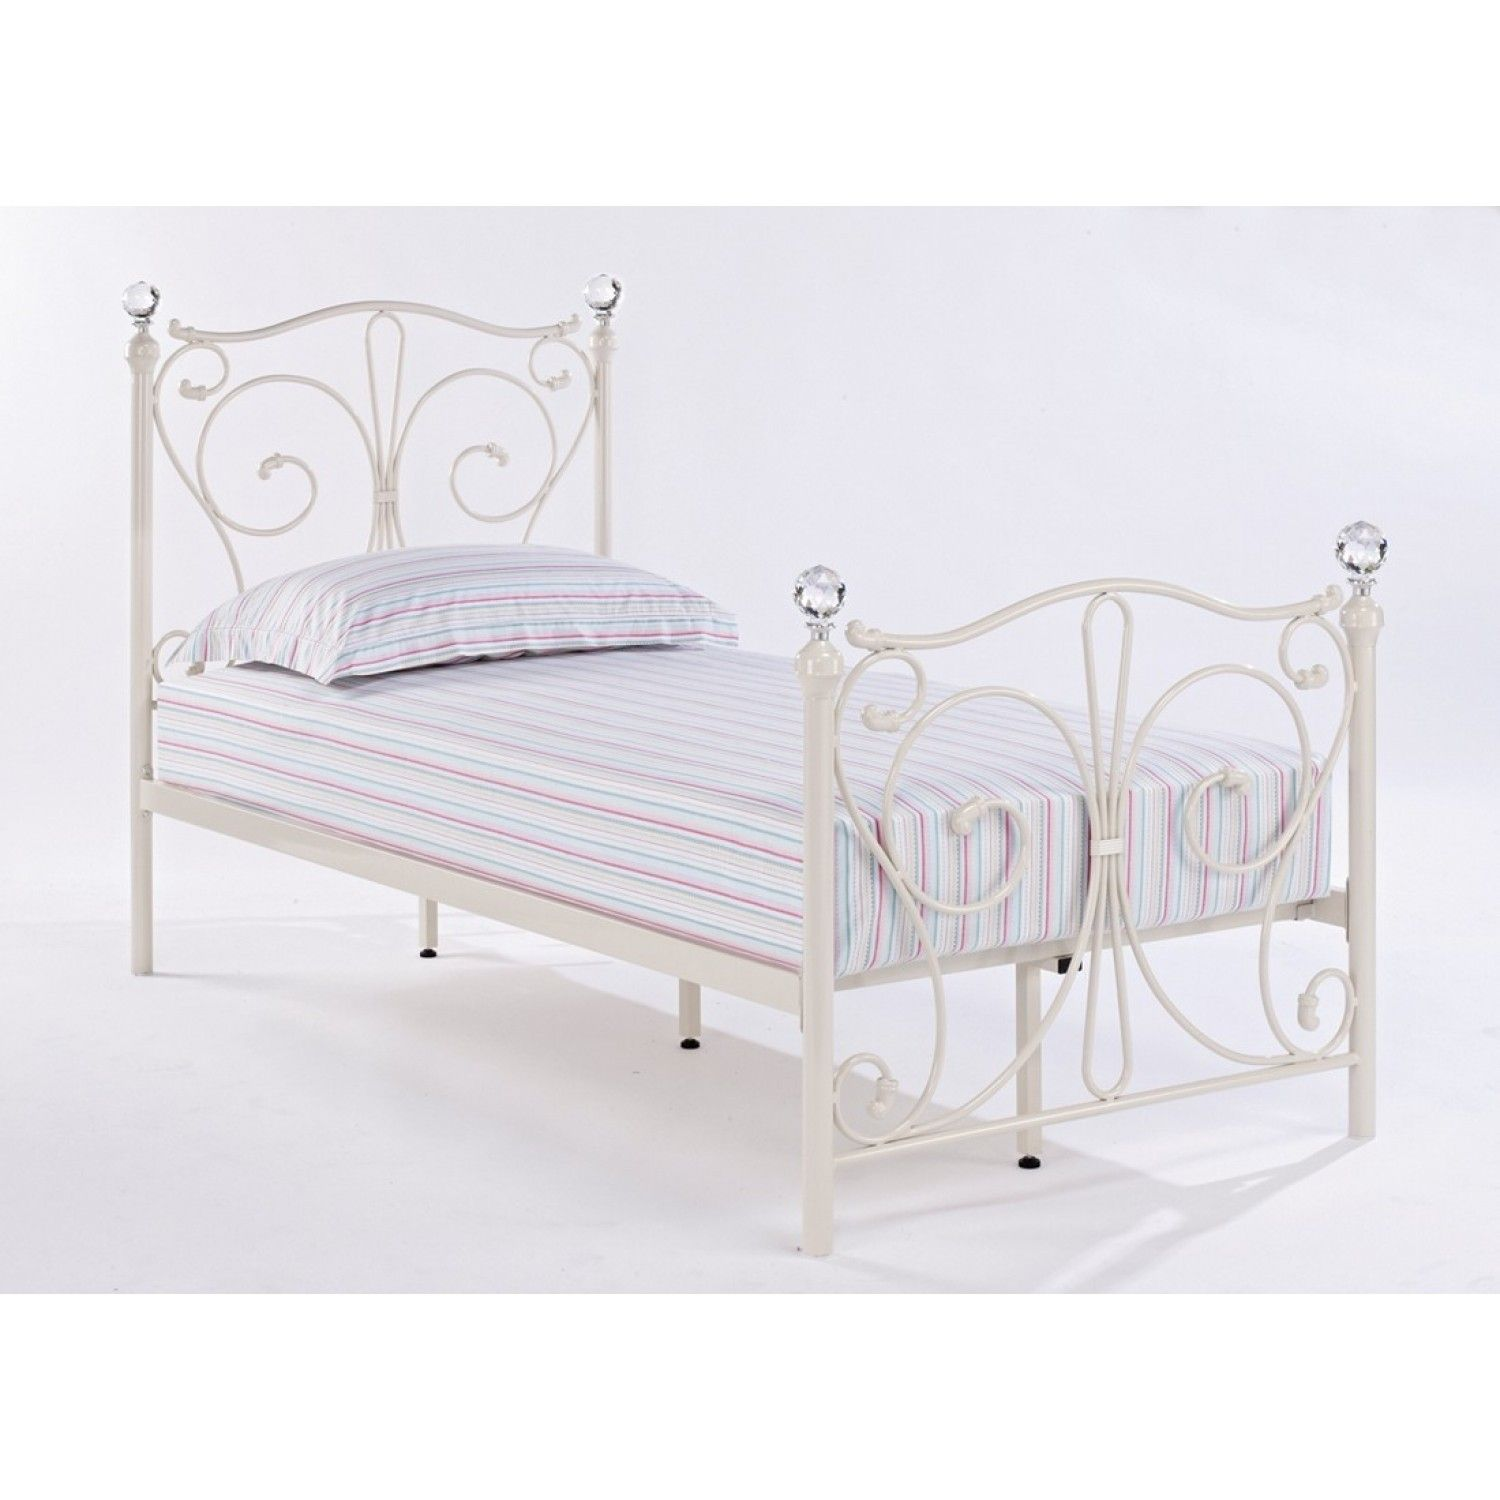 8dfc408e74d2 Bonsoni Foyles Single Metal Bed Frame 3ft White by Lloyd Phillip and  Delric-30